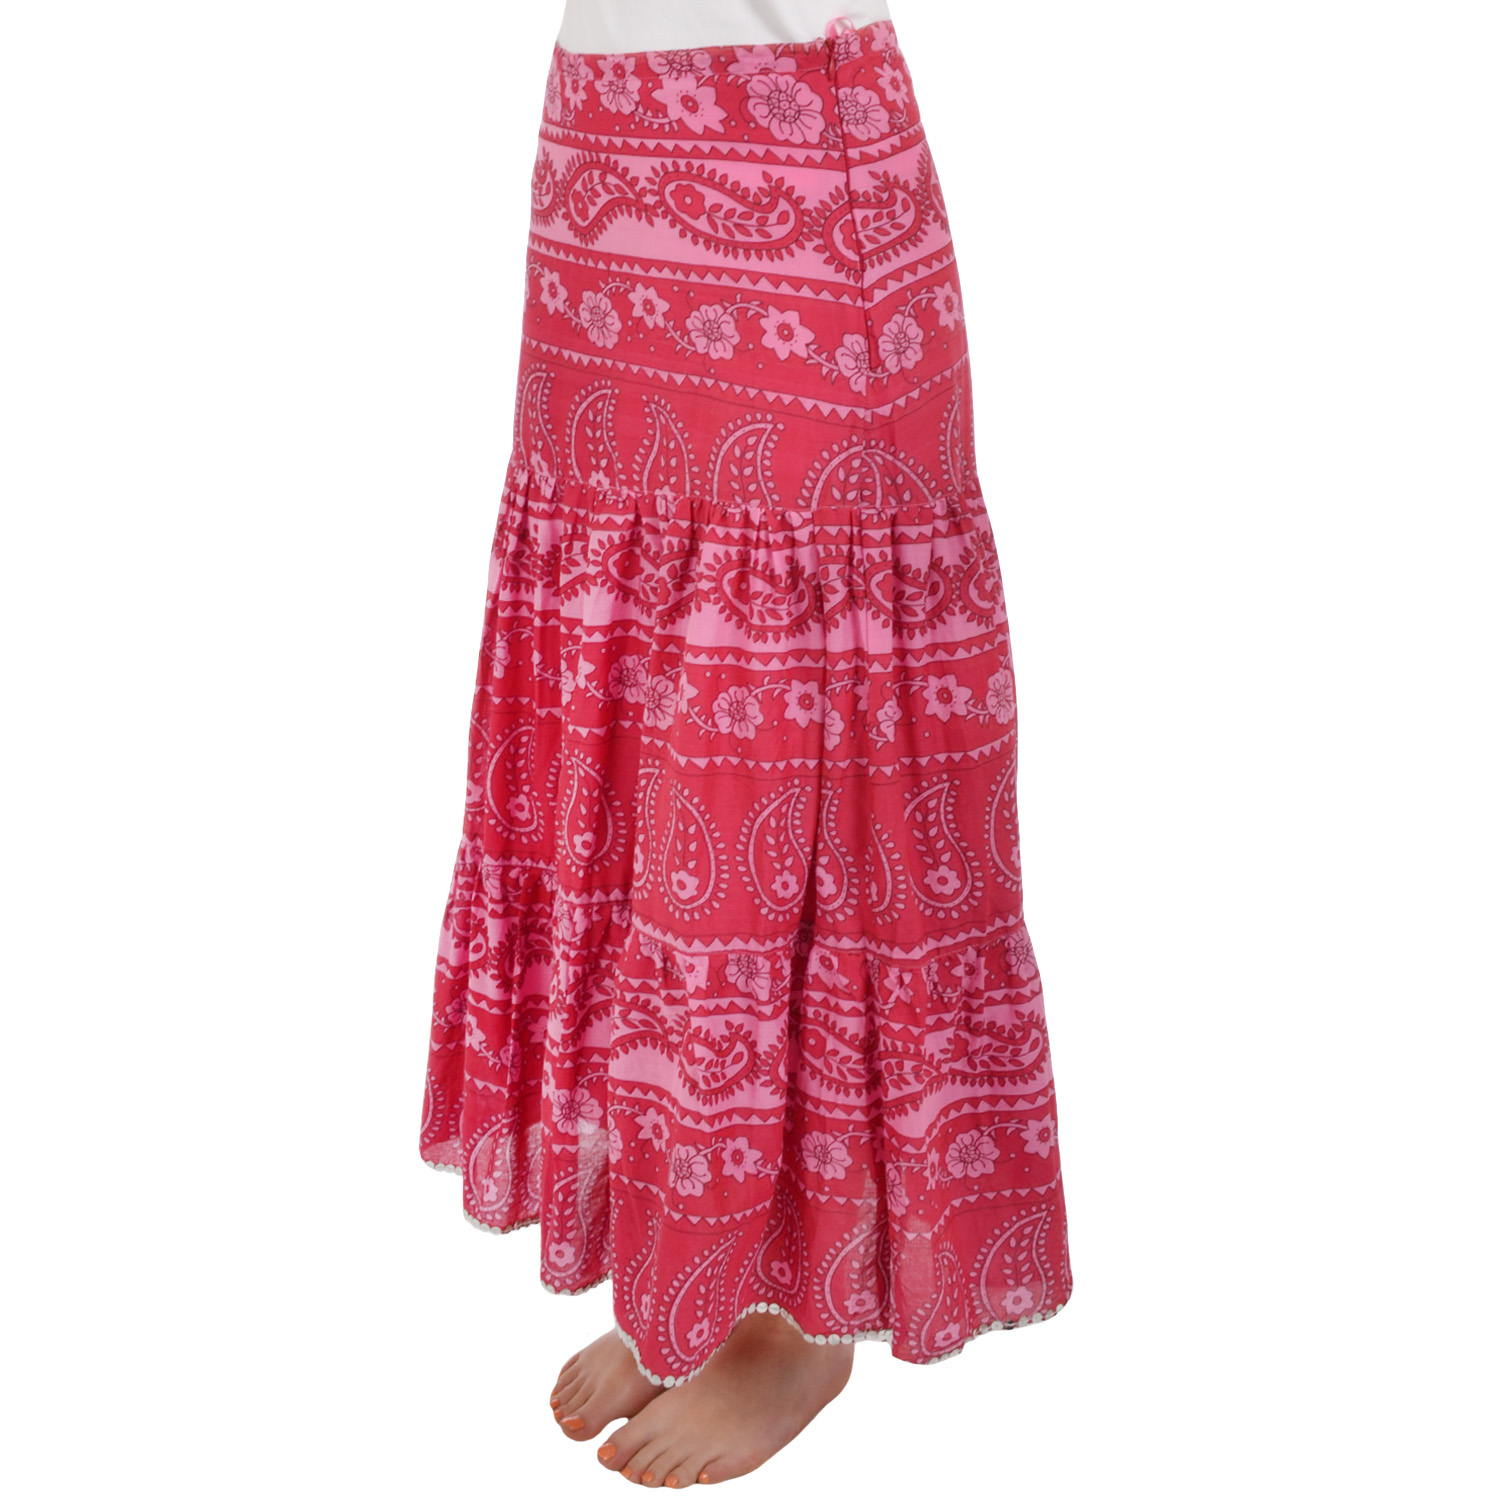 Miss-Posh-Womens-Ladies-Long-Floral-Boho-Summer-Holiday-Maxi-Skirt